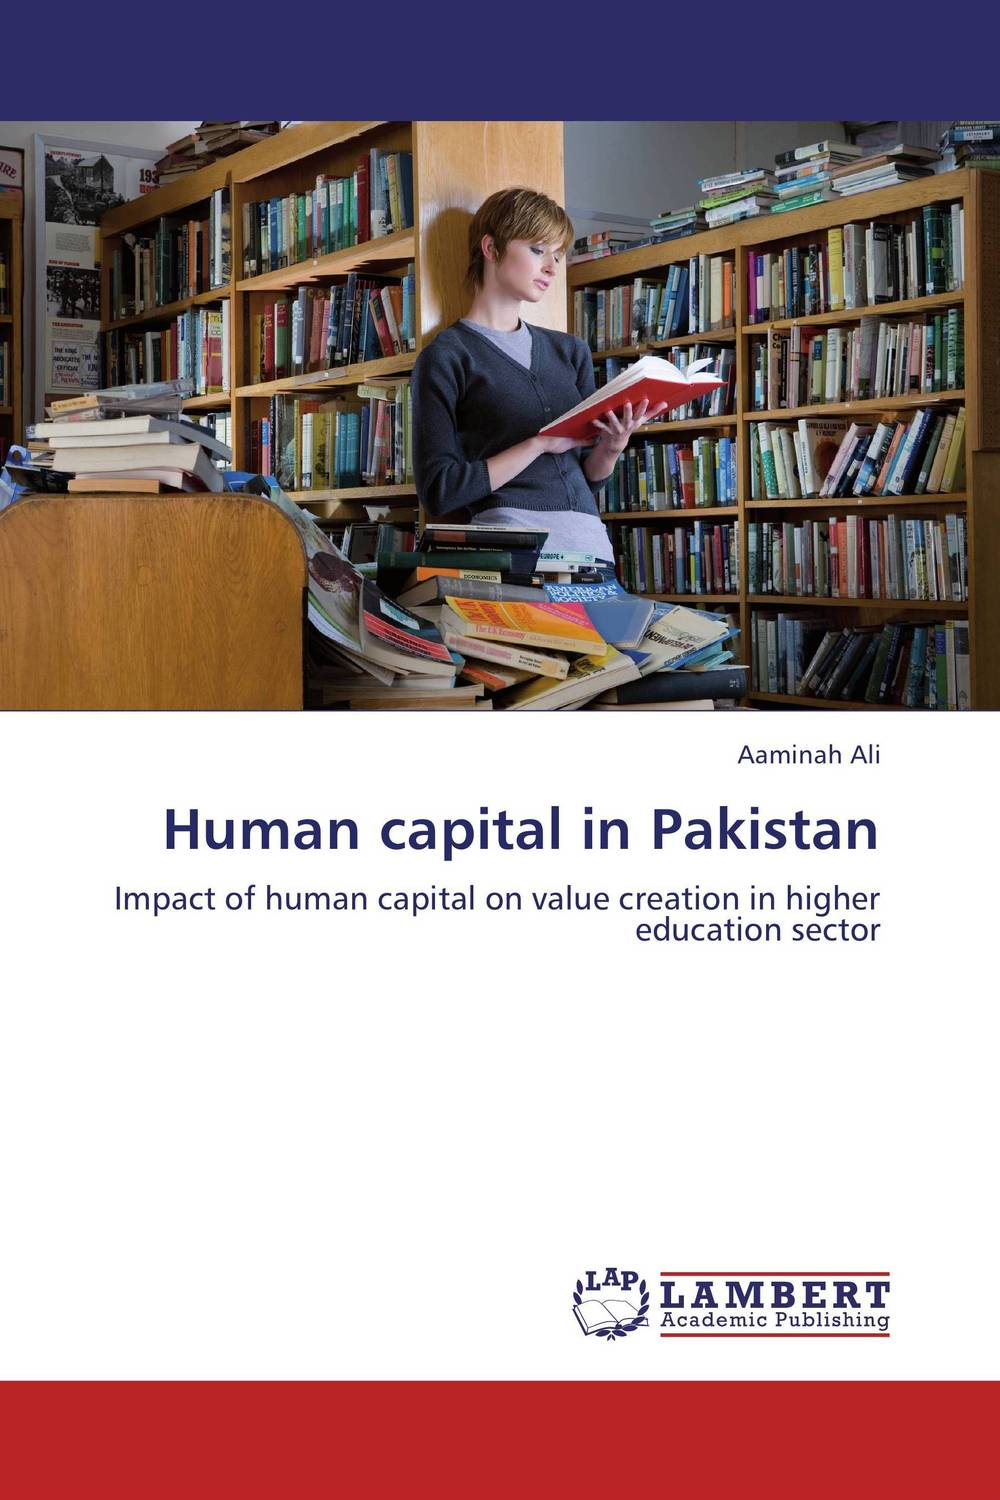 Human capital in Pakistan eric lowitt the future of value how sustainability creates value through competitive differentiation